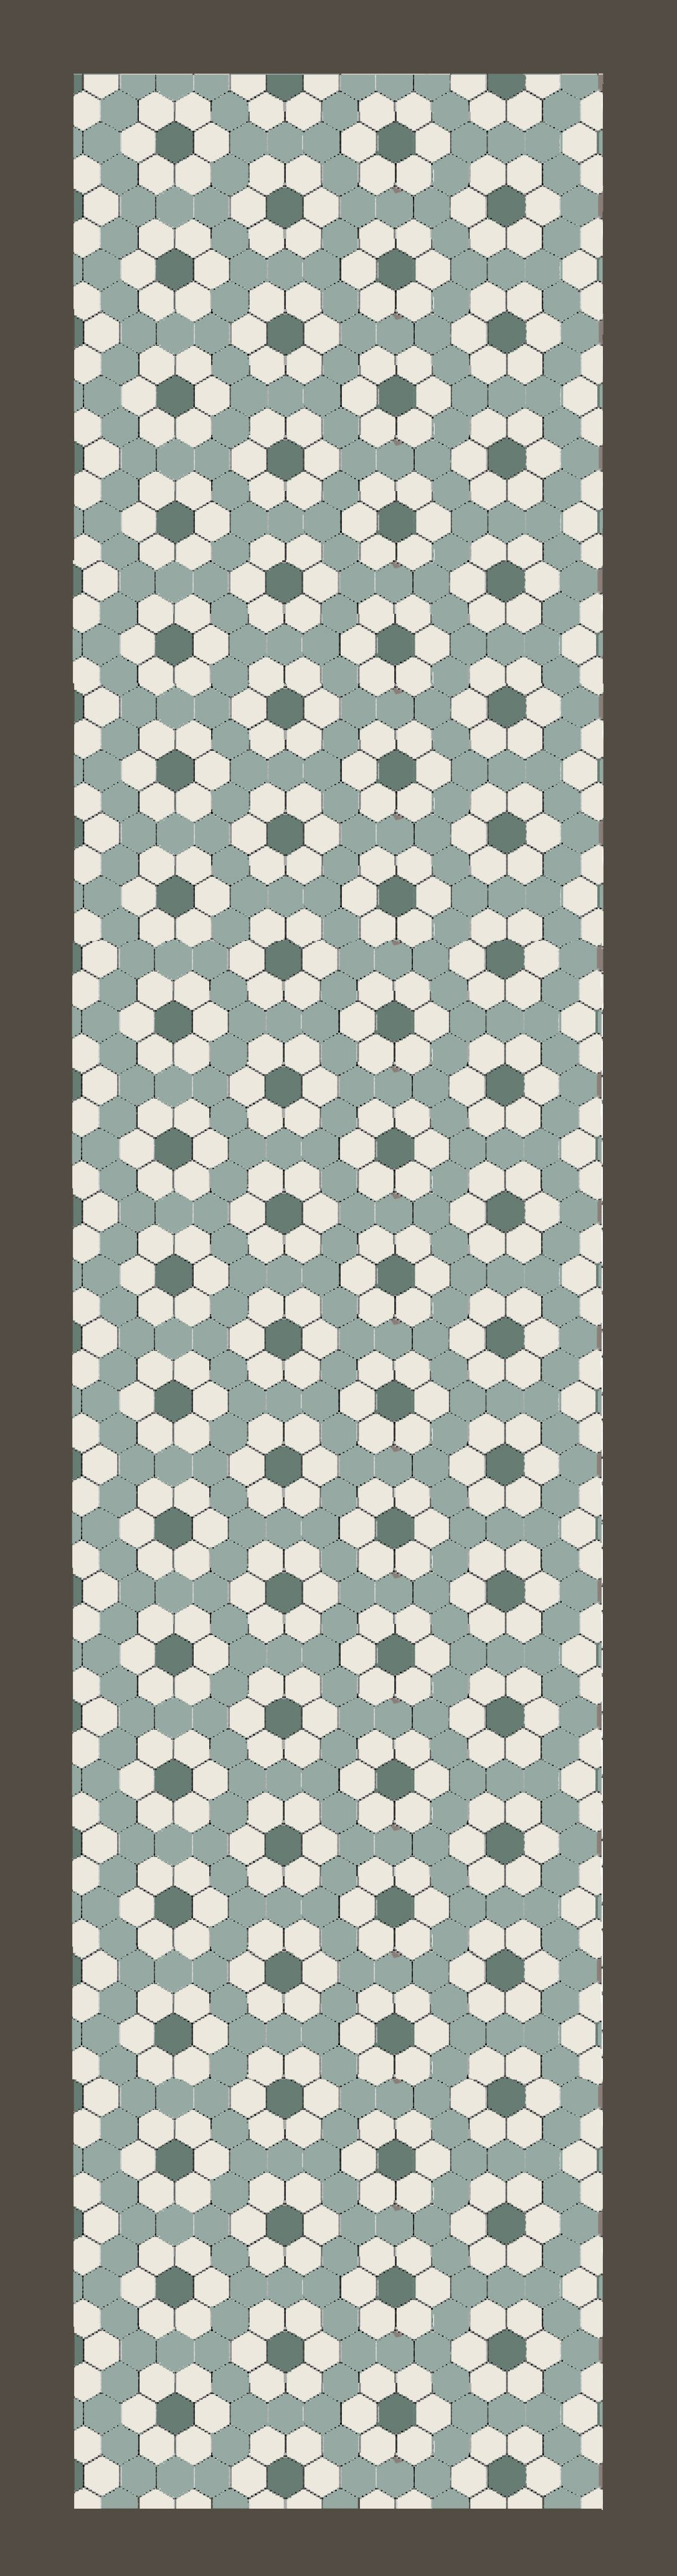 Hexagon Tile Floor Patterns A Hex Upon You Slate Interiors And Gray